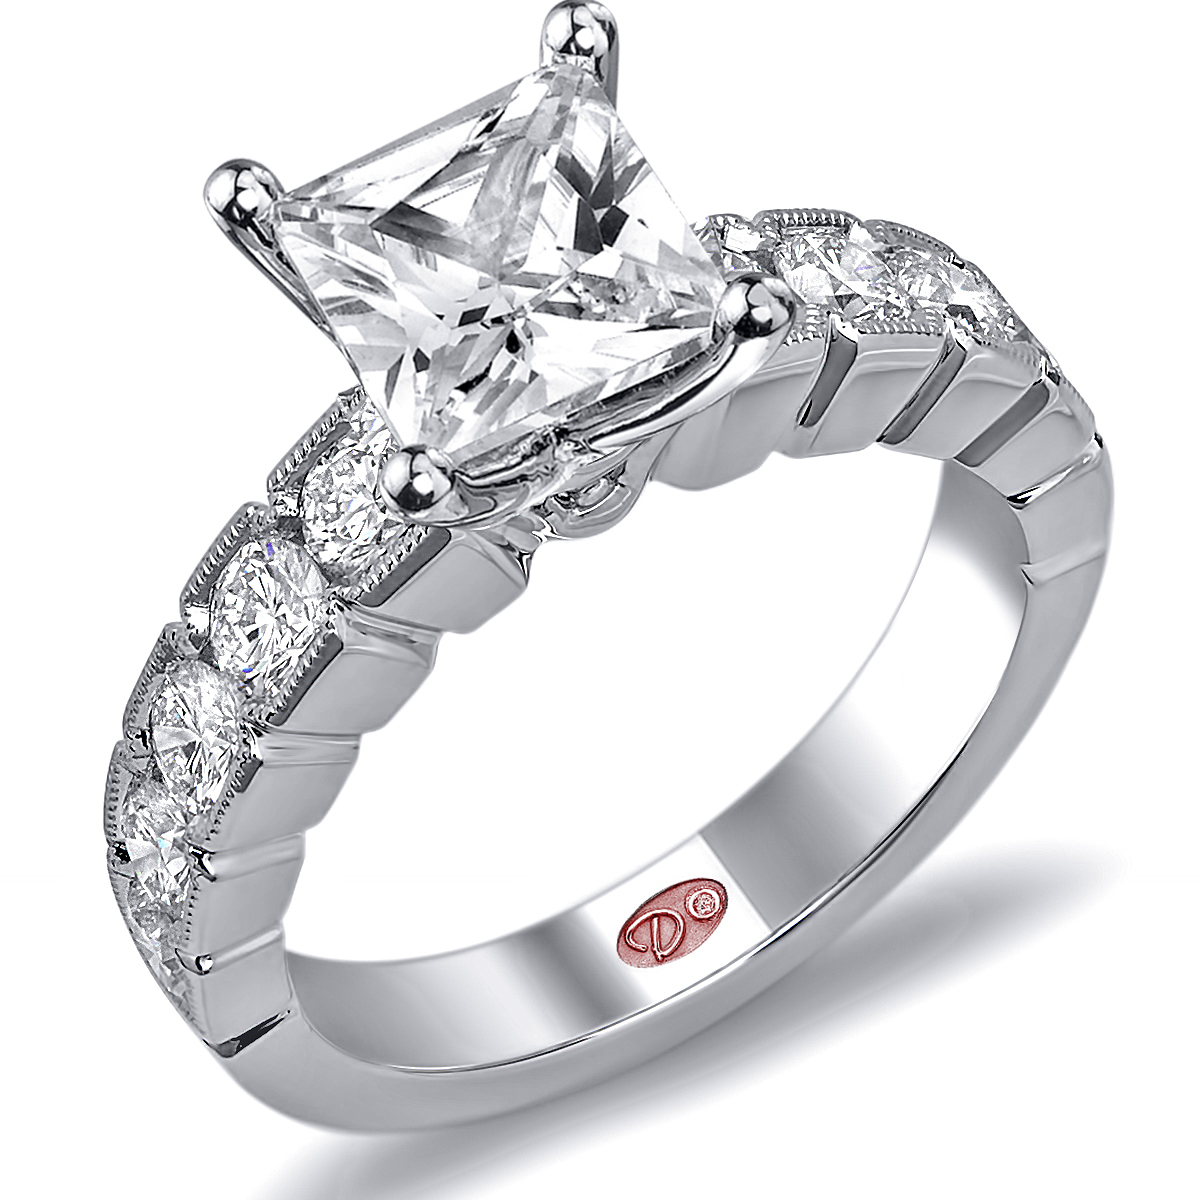 Designer Engagement Rings In Wichita